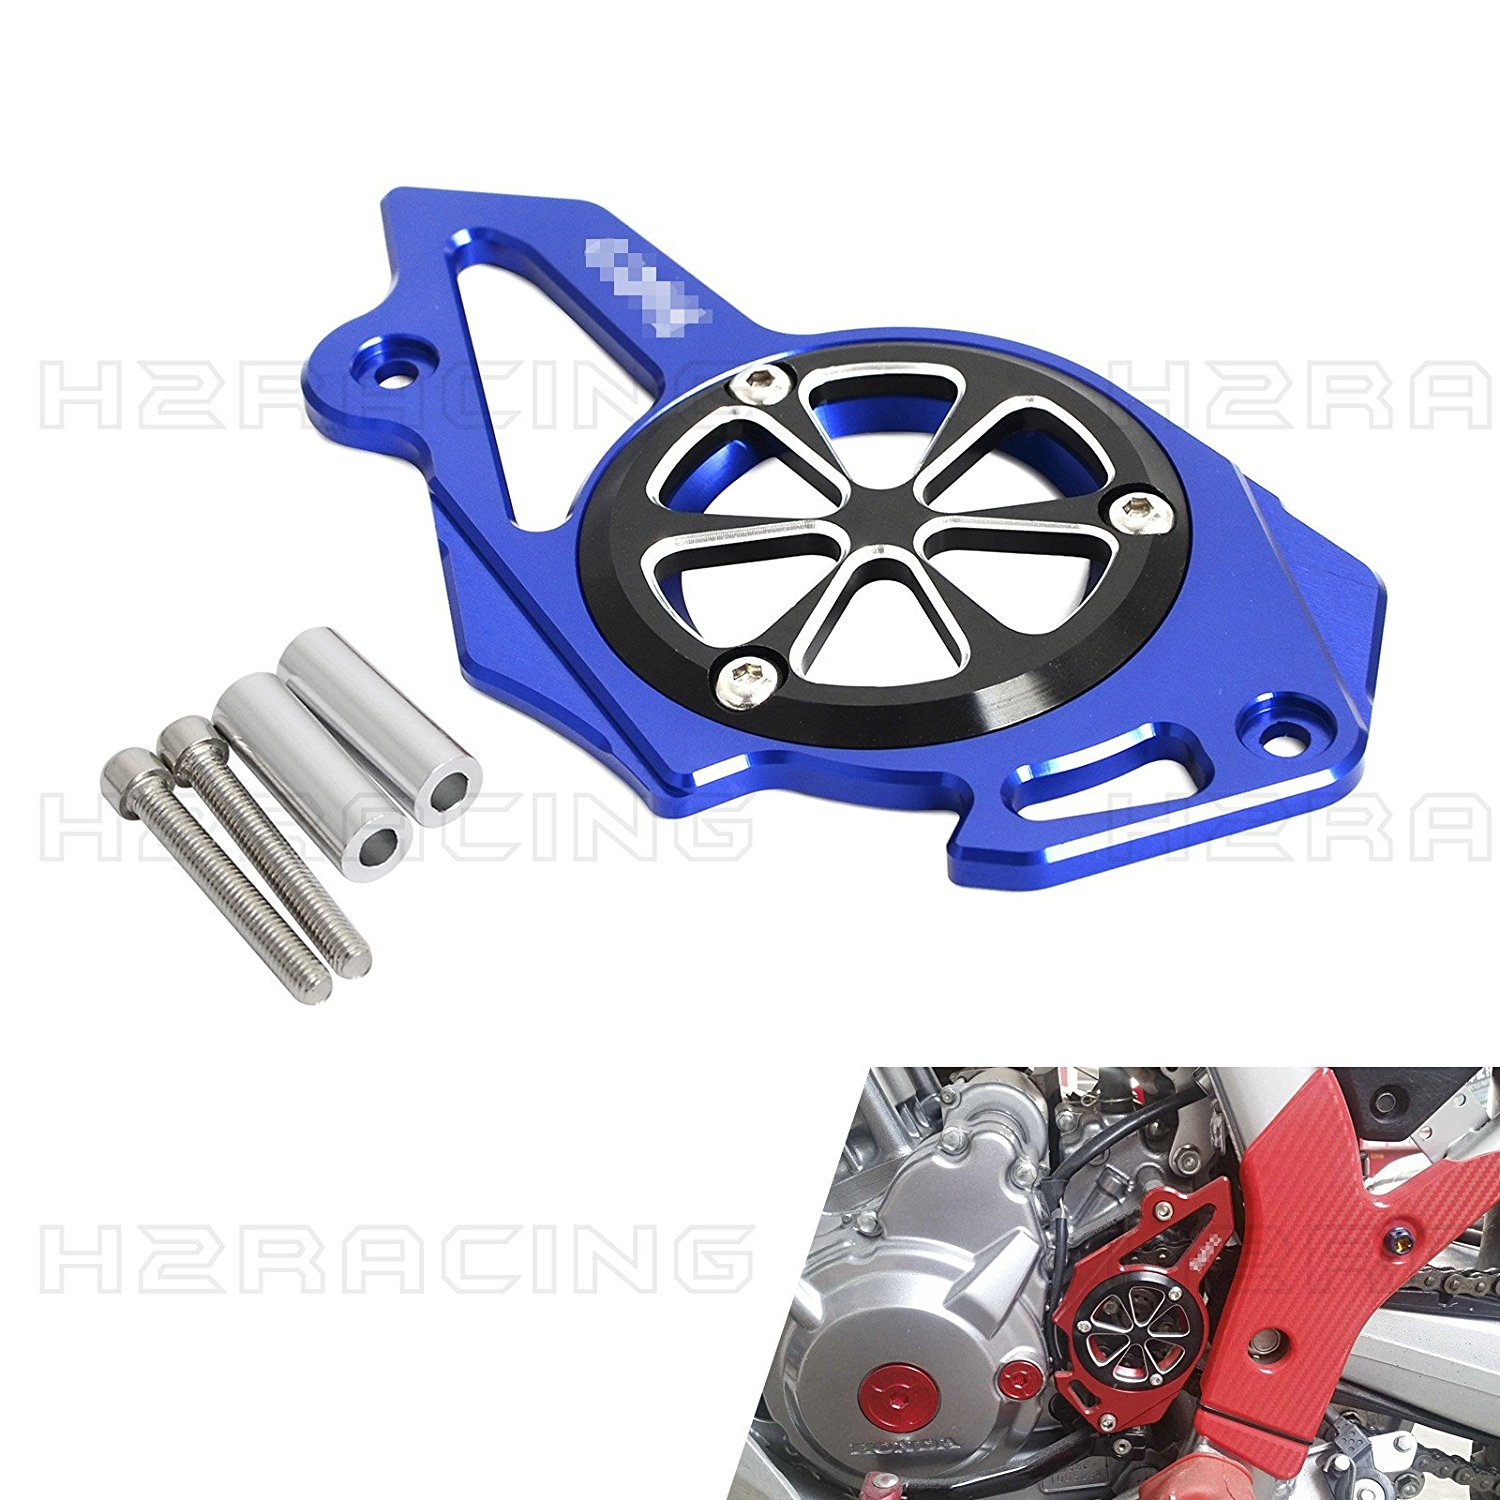 H2RACING Blue Front Sprocket Chain Cover Guard Protector for Honda CRF250L/M 2012 2013 2014 2015